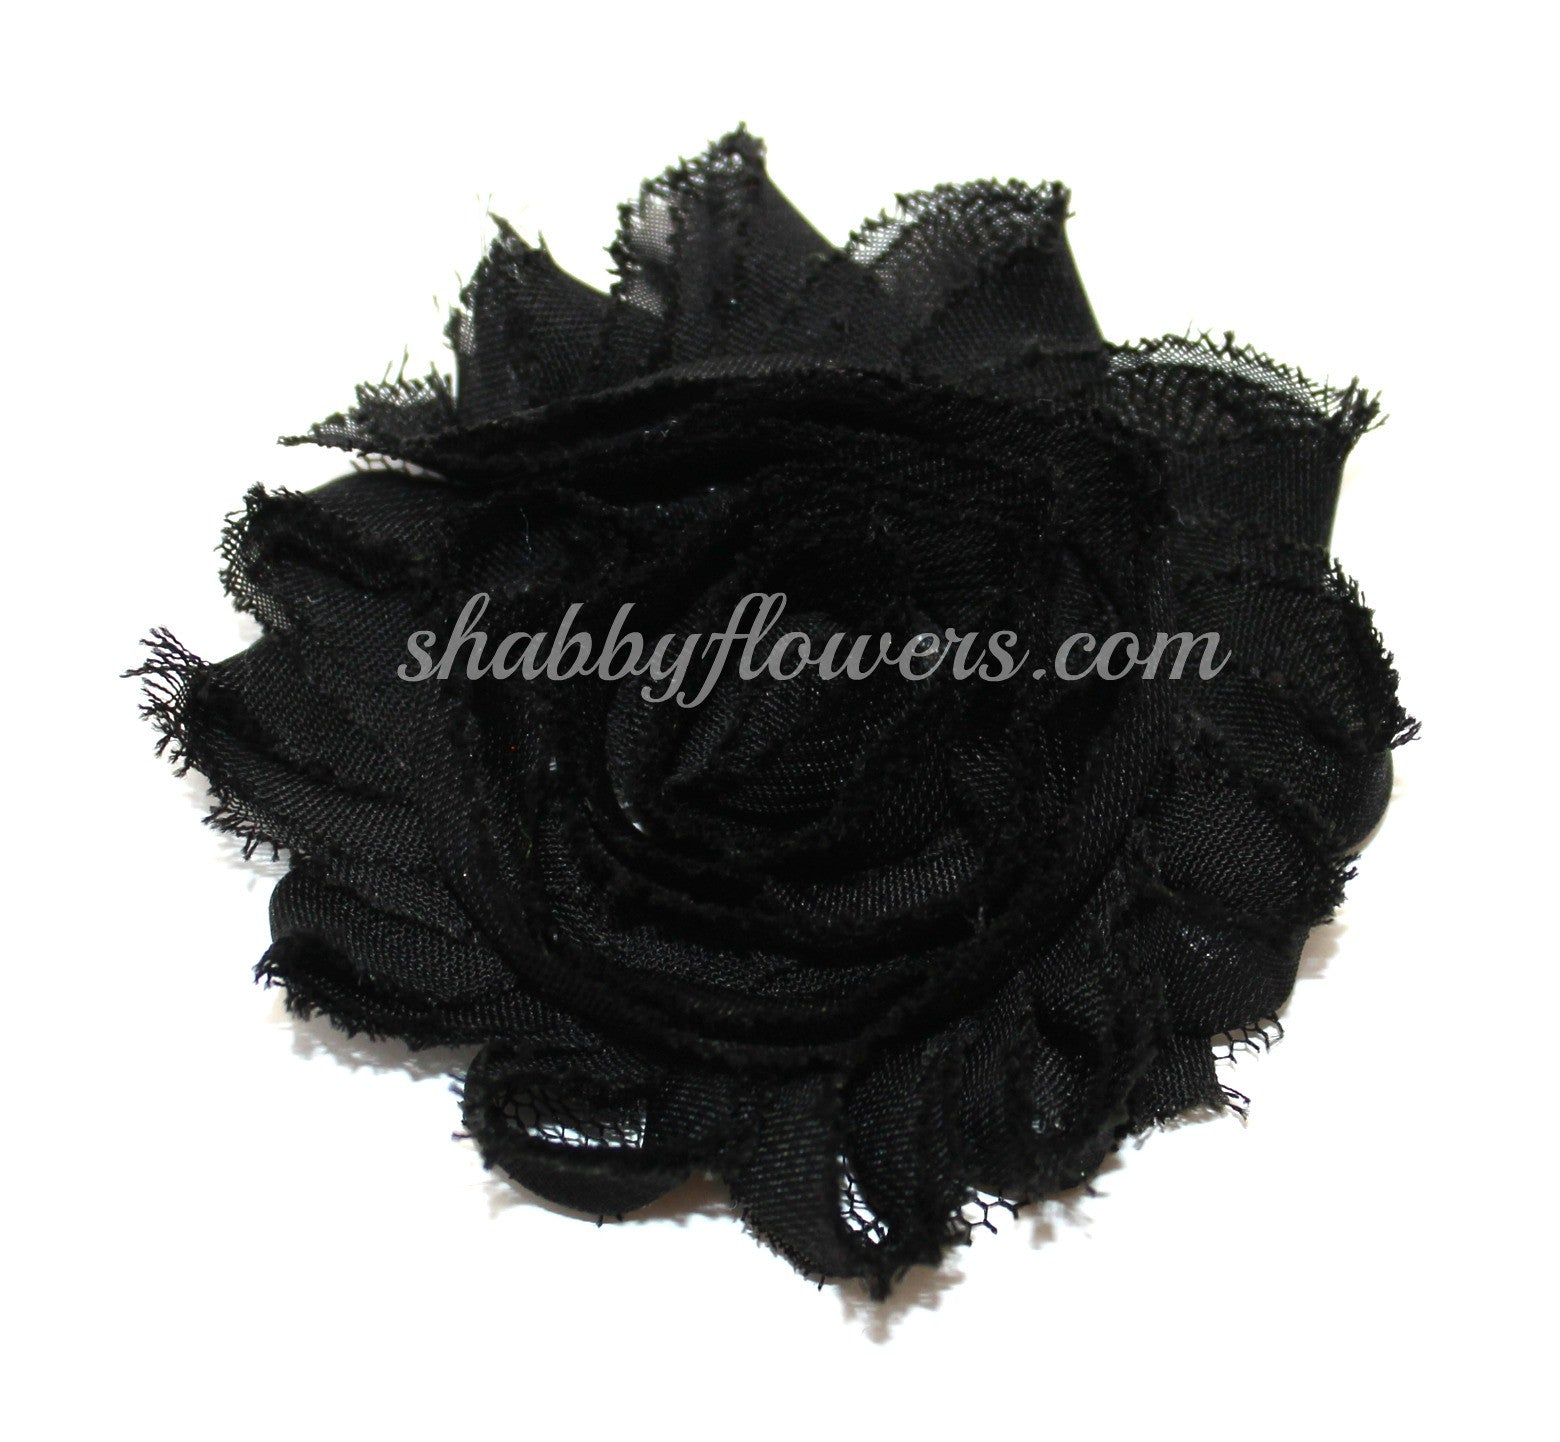 Shabby Chiffon Flower- Black - shabbyflowers.com